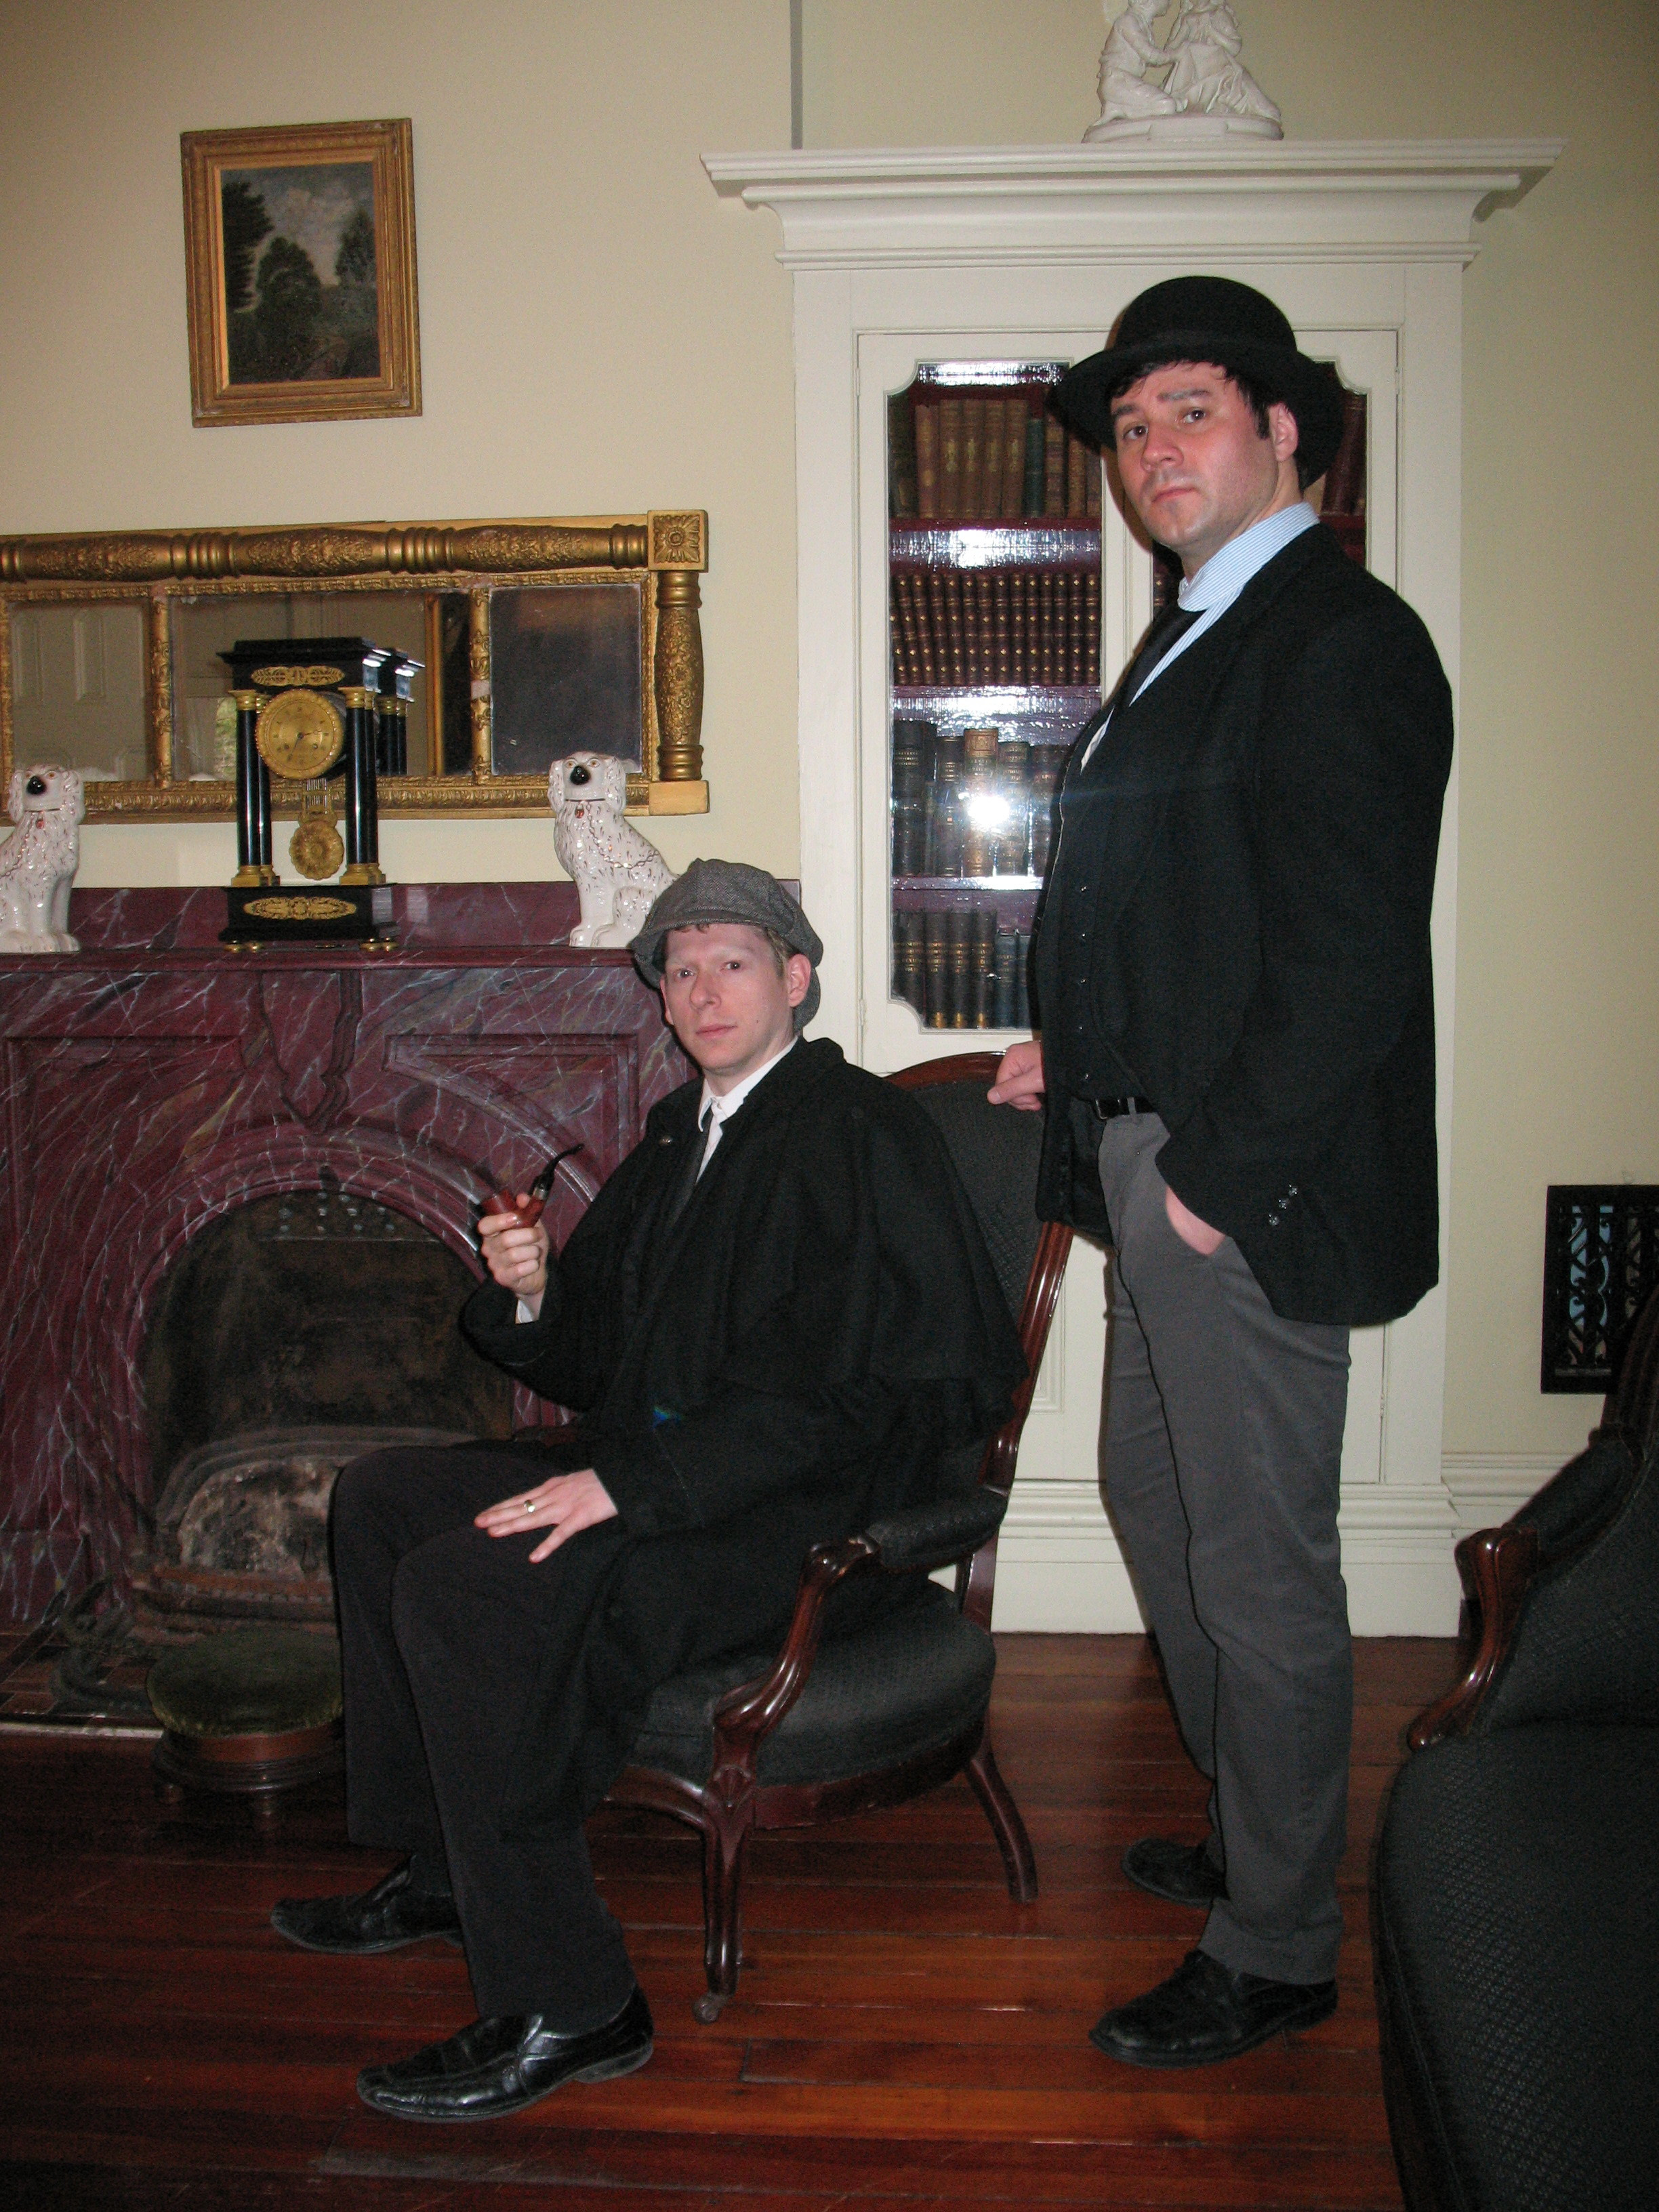 Josh Hitchens as Sherlock Holmes and Peter Zielinski as Watson, 2015.